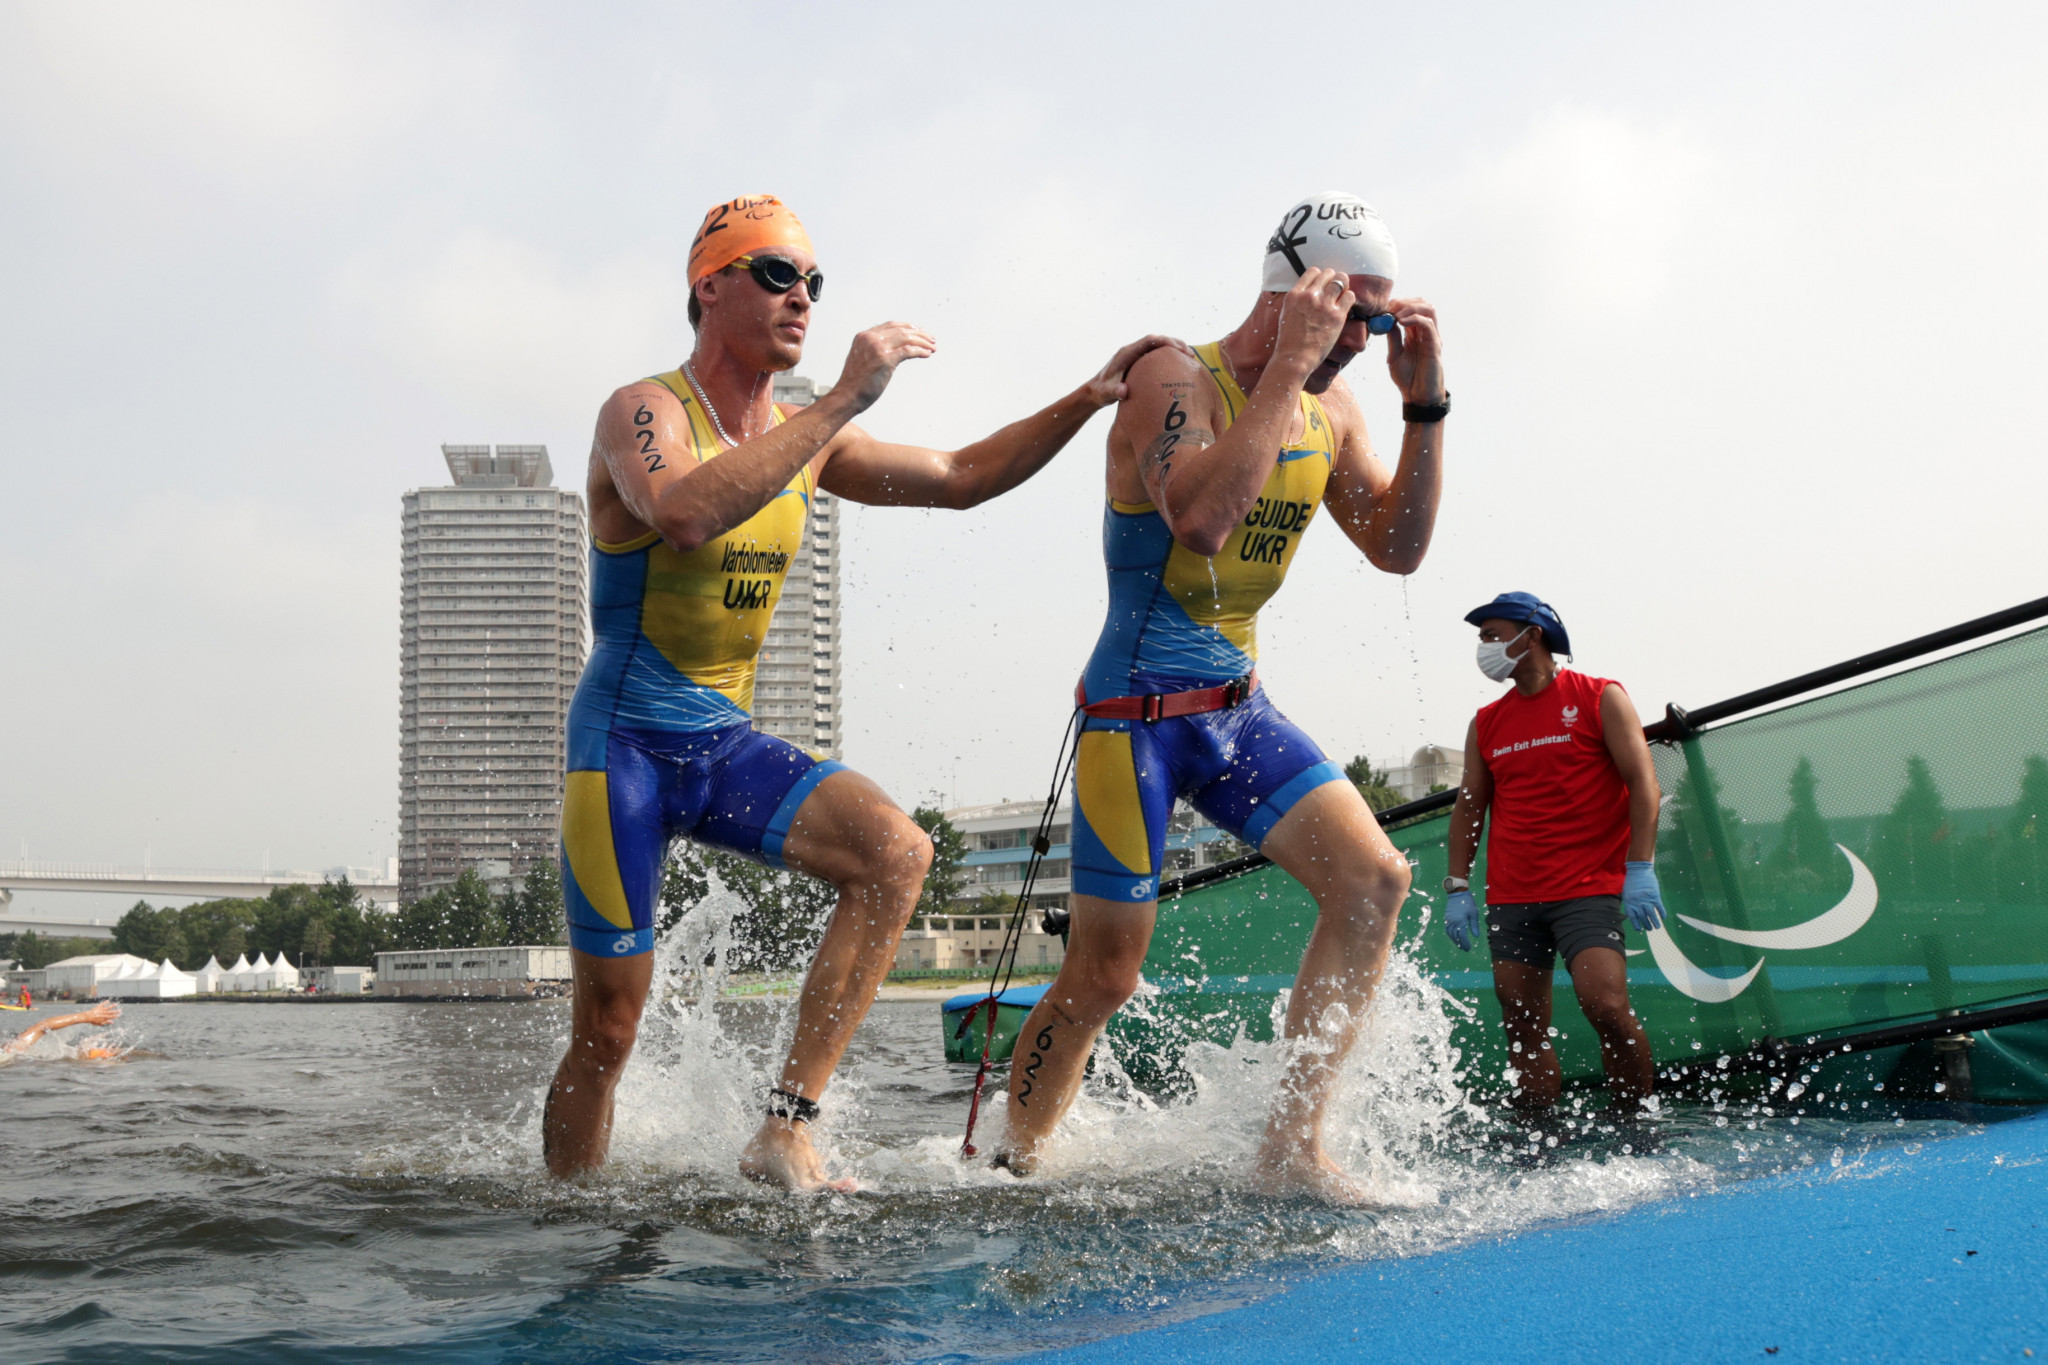 Paralympians Varfolomieiev and Oleksiuk included in line-up for penultimate World Triathlon Para Cup event of the season in Alanya